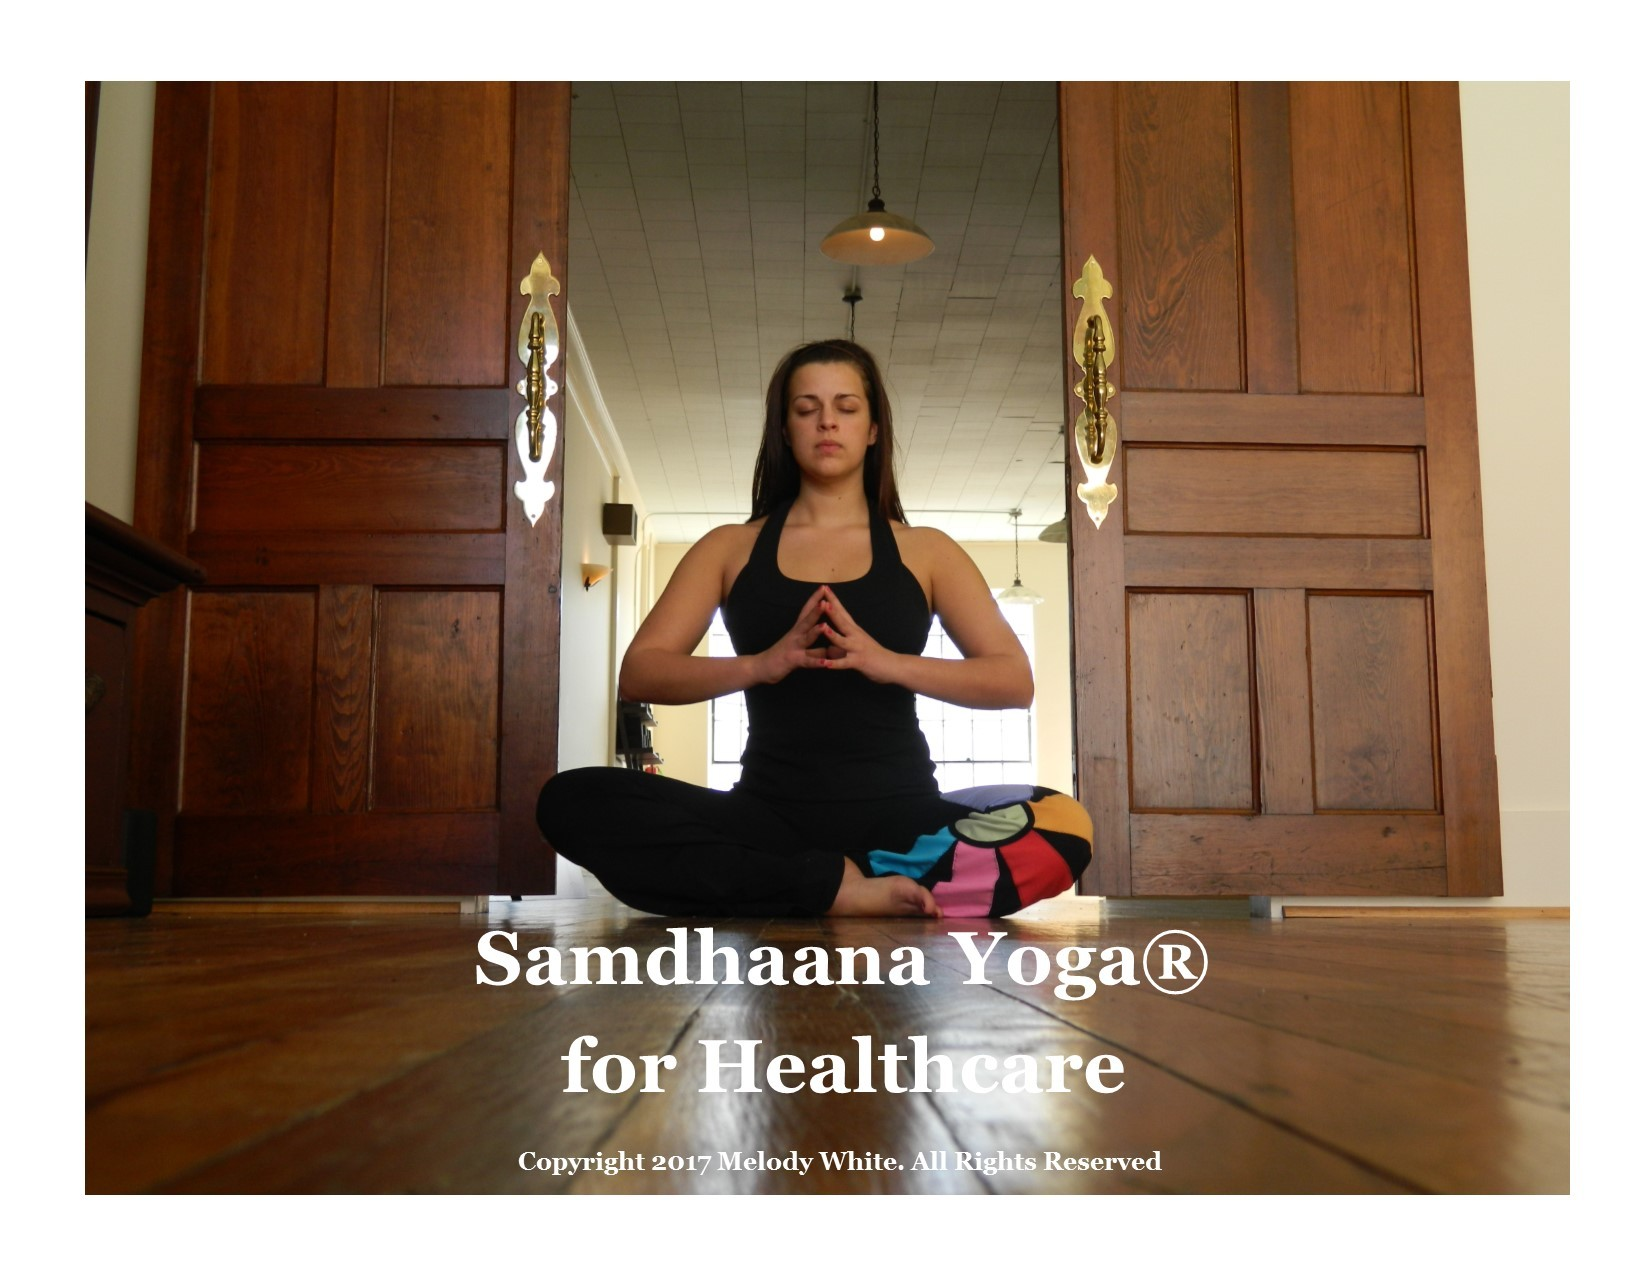 samdhaana yoga for healthcare